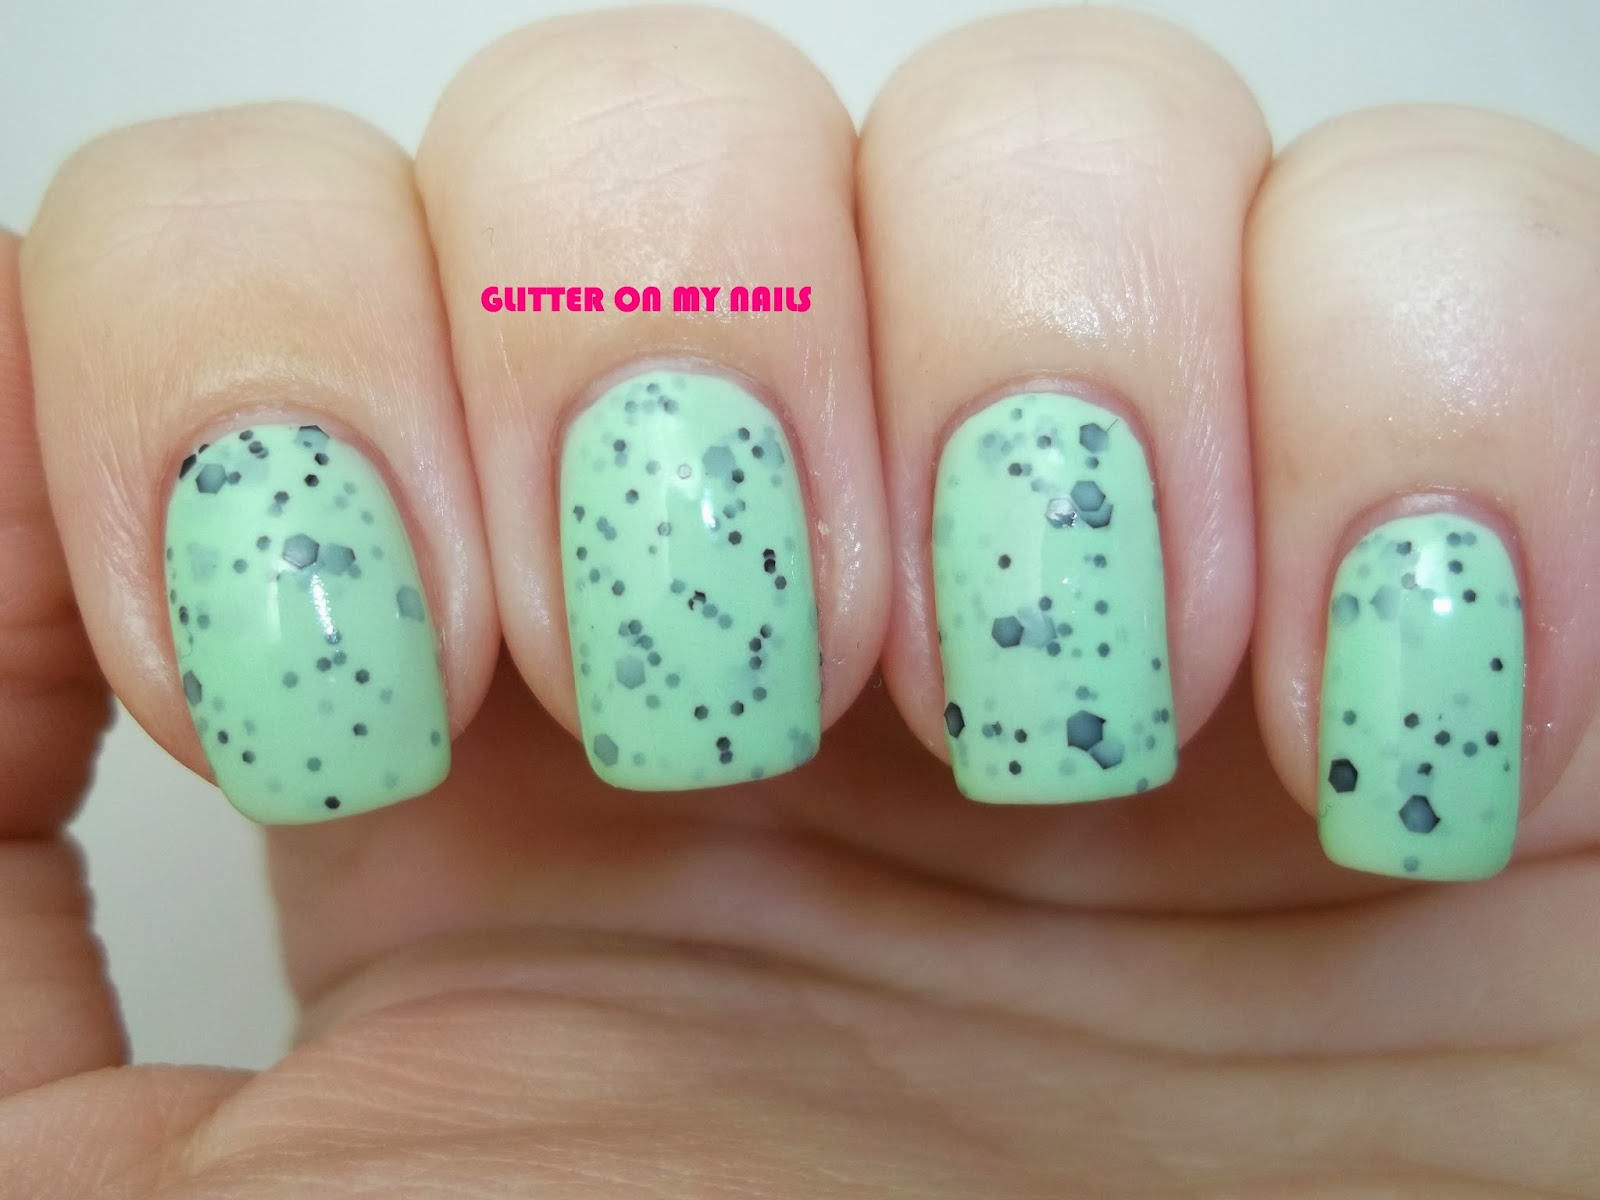 GLITTER ON MY NAILS: enero 2014